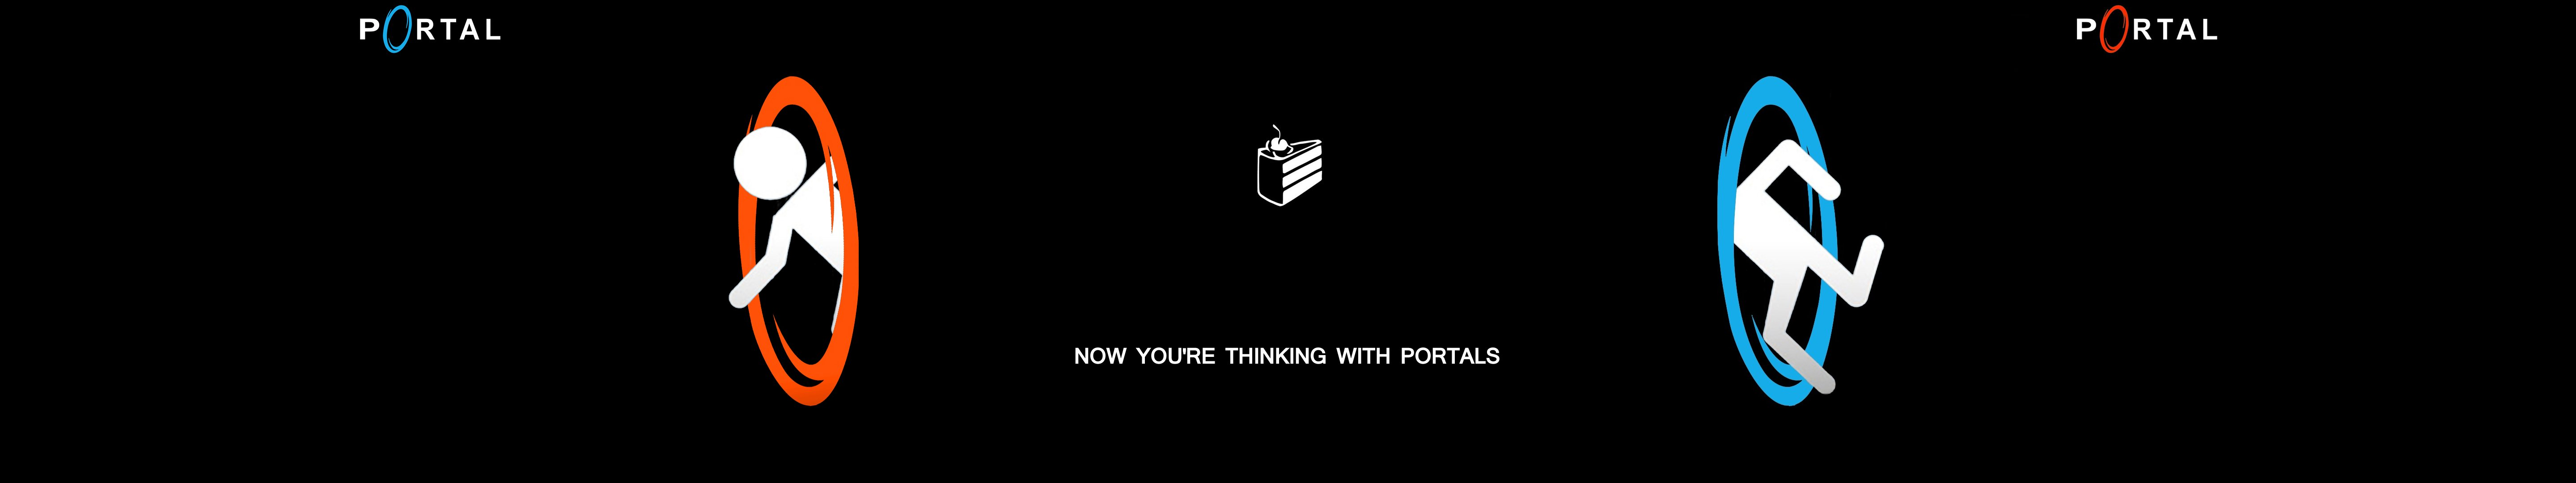 Portal (Video Game) clipart #3, Download drawings